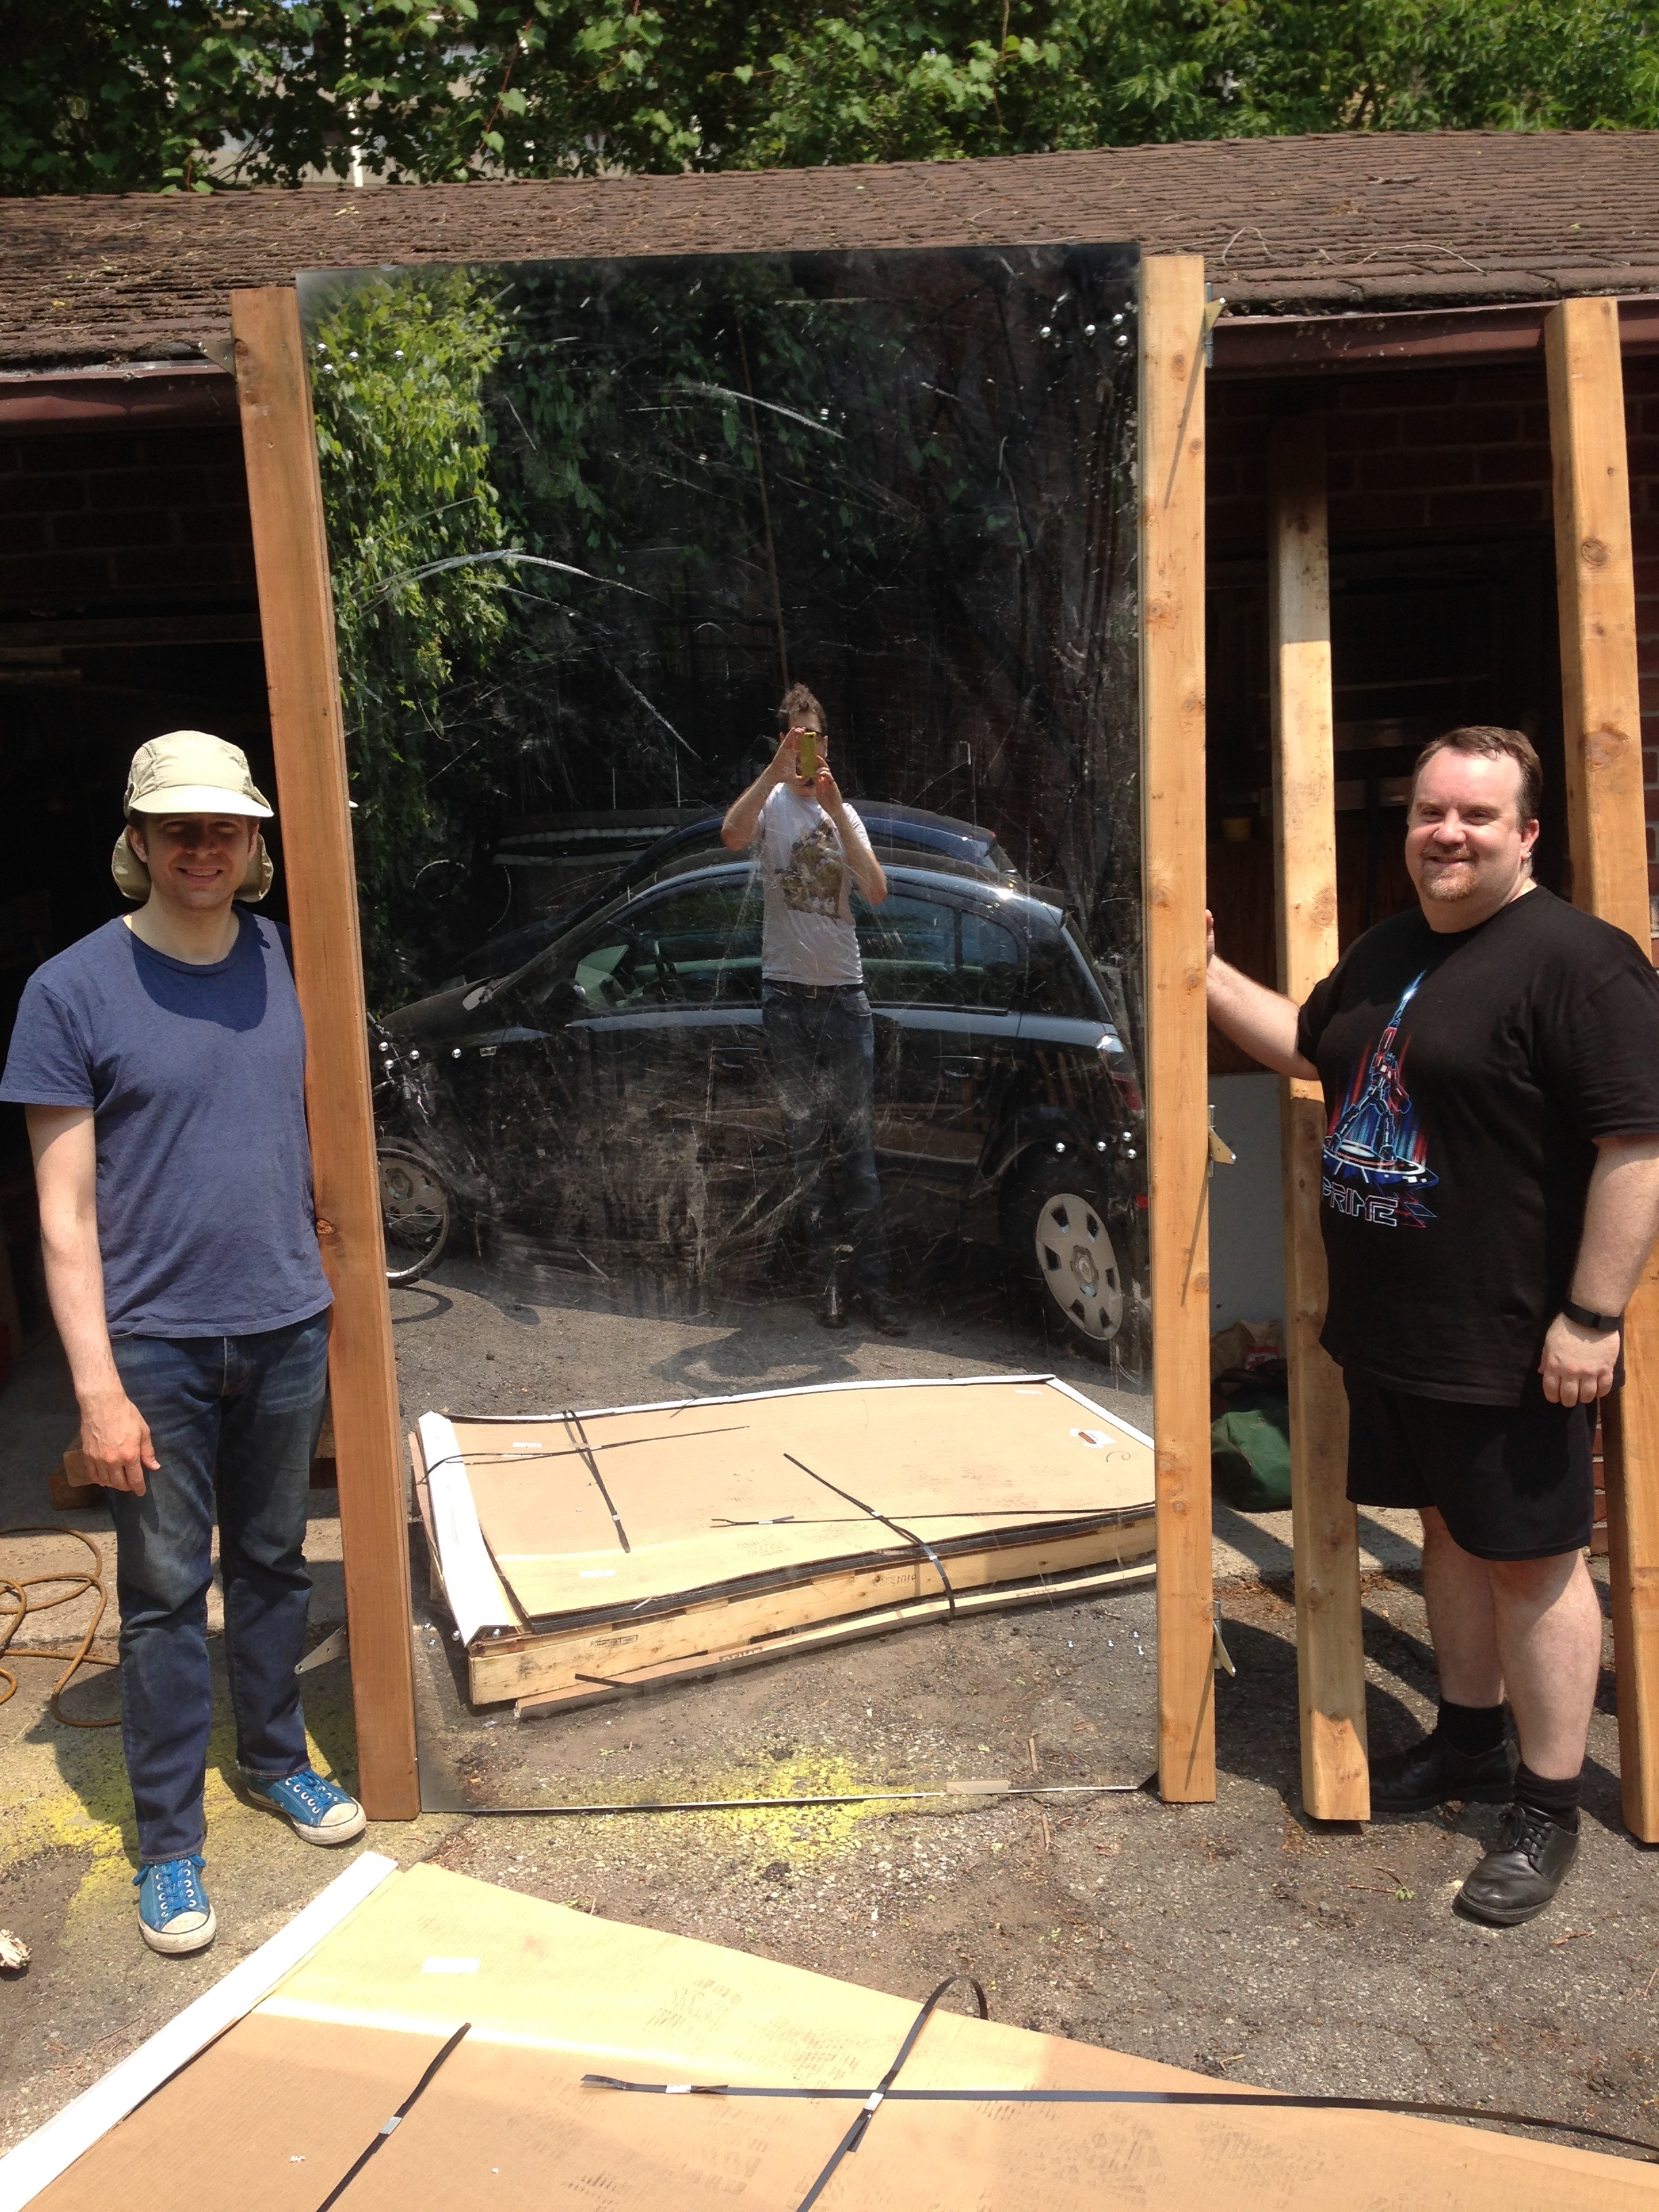 Geoff and Matt pose with their freshly constructed mirror panel!